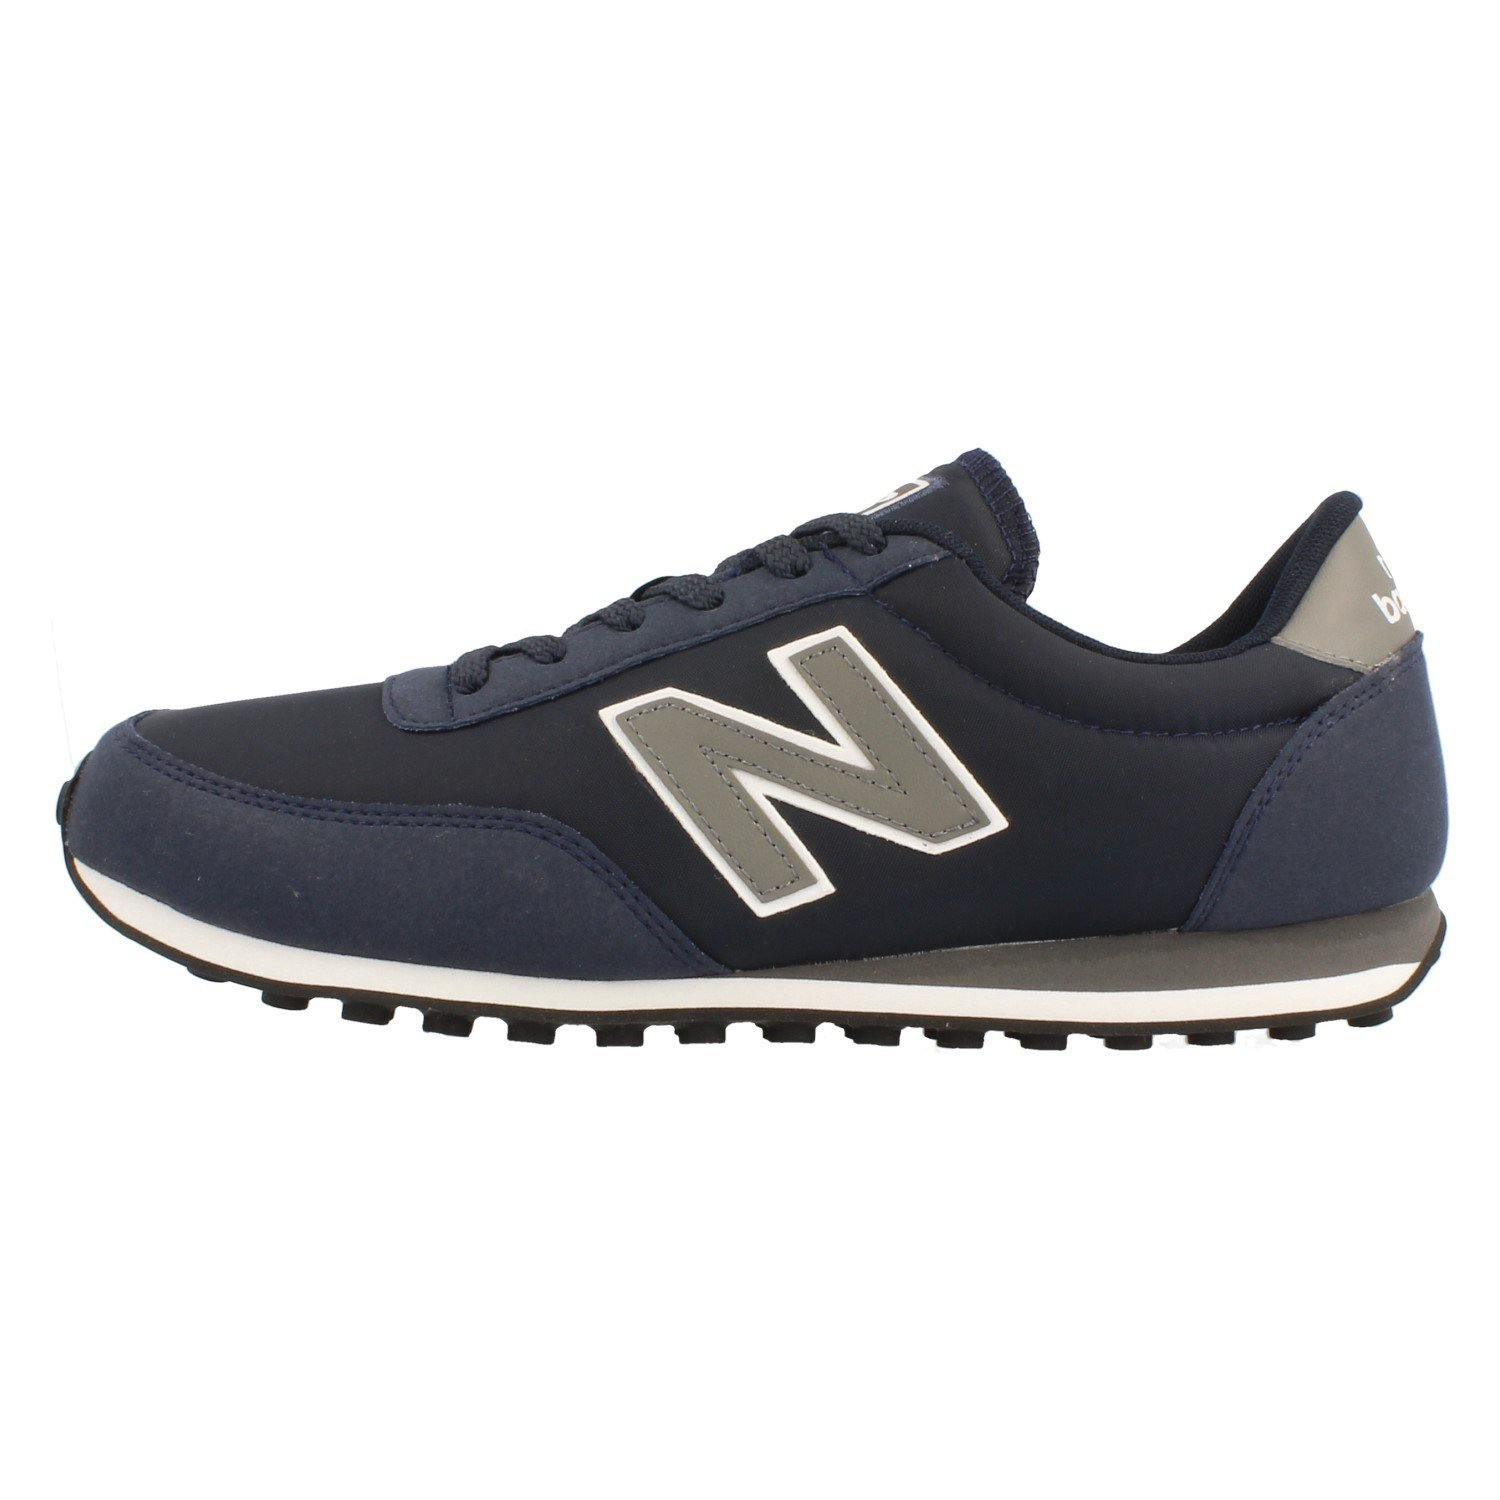 New Balance ML373RED - ML373RED - Couleur: Rouge - Pointure: 43.0 FIQAQRi